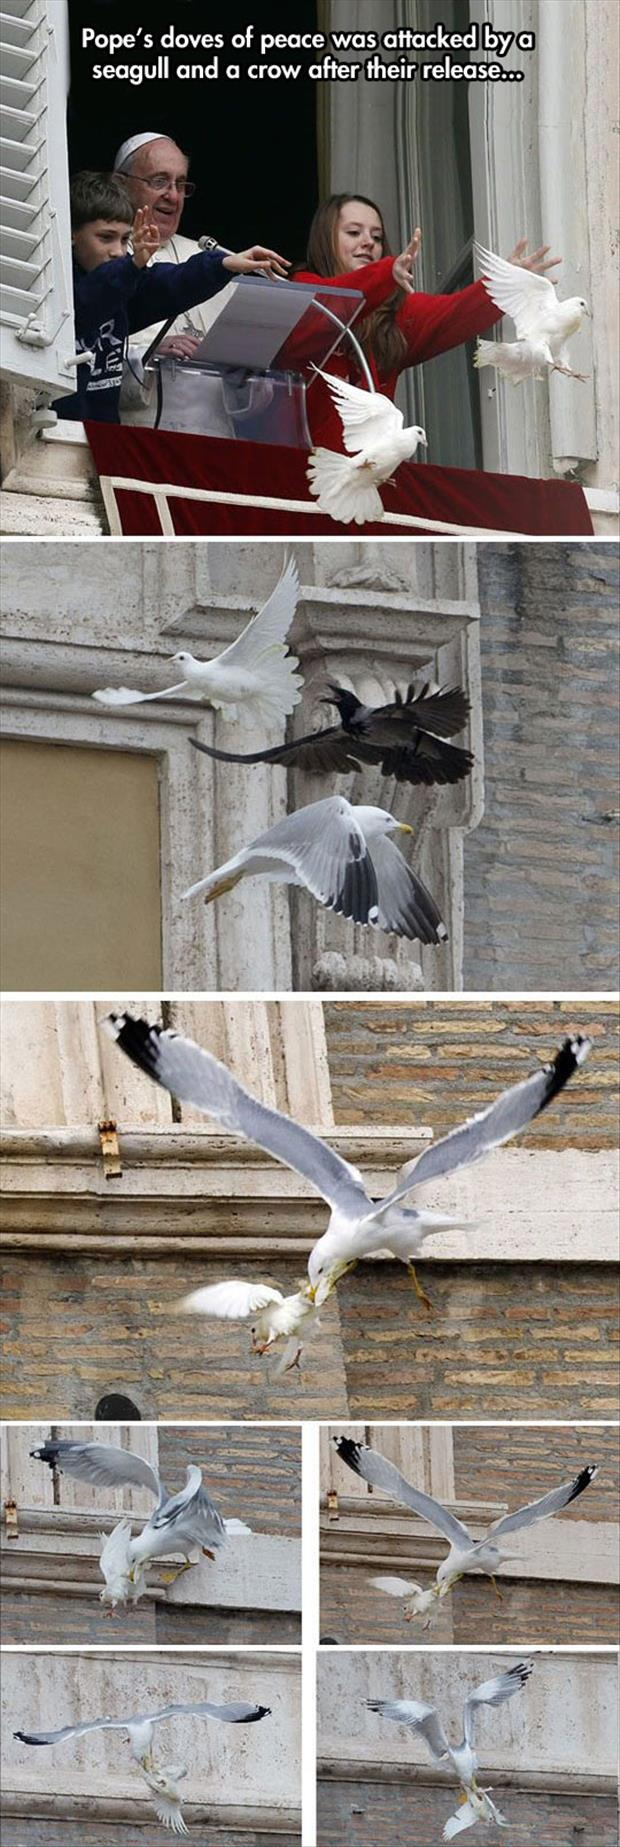 the popes doves of peace were attacked by seaguls